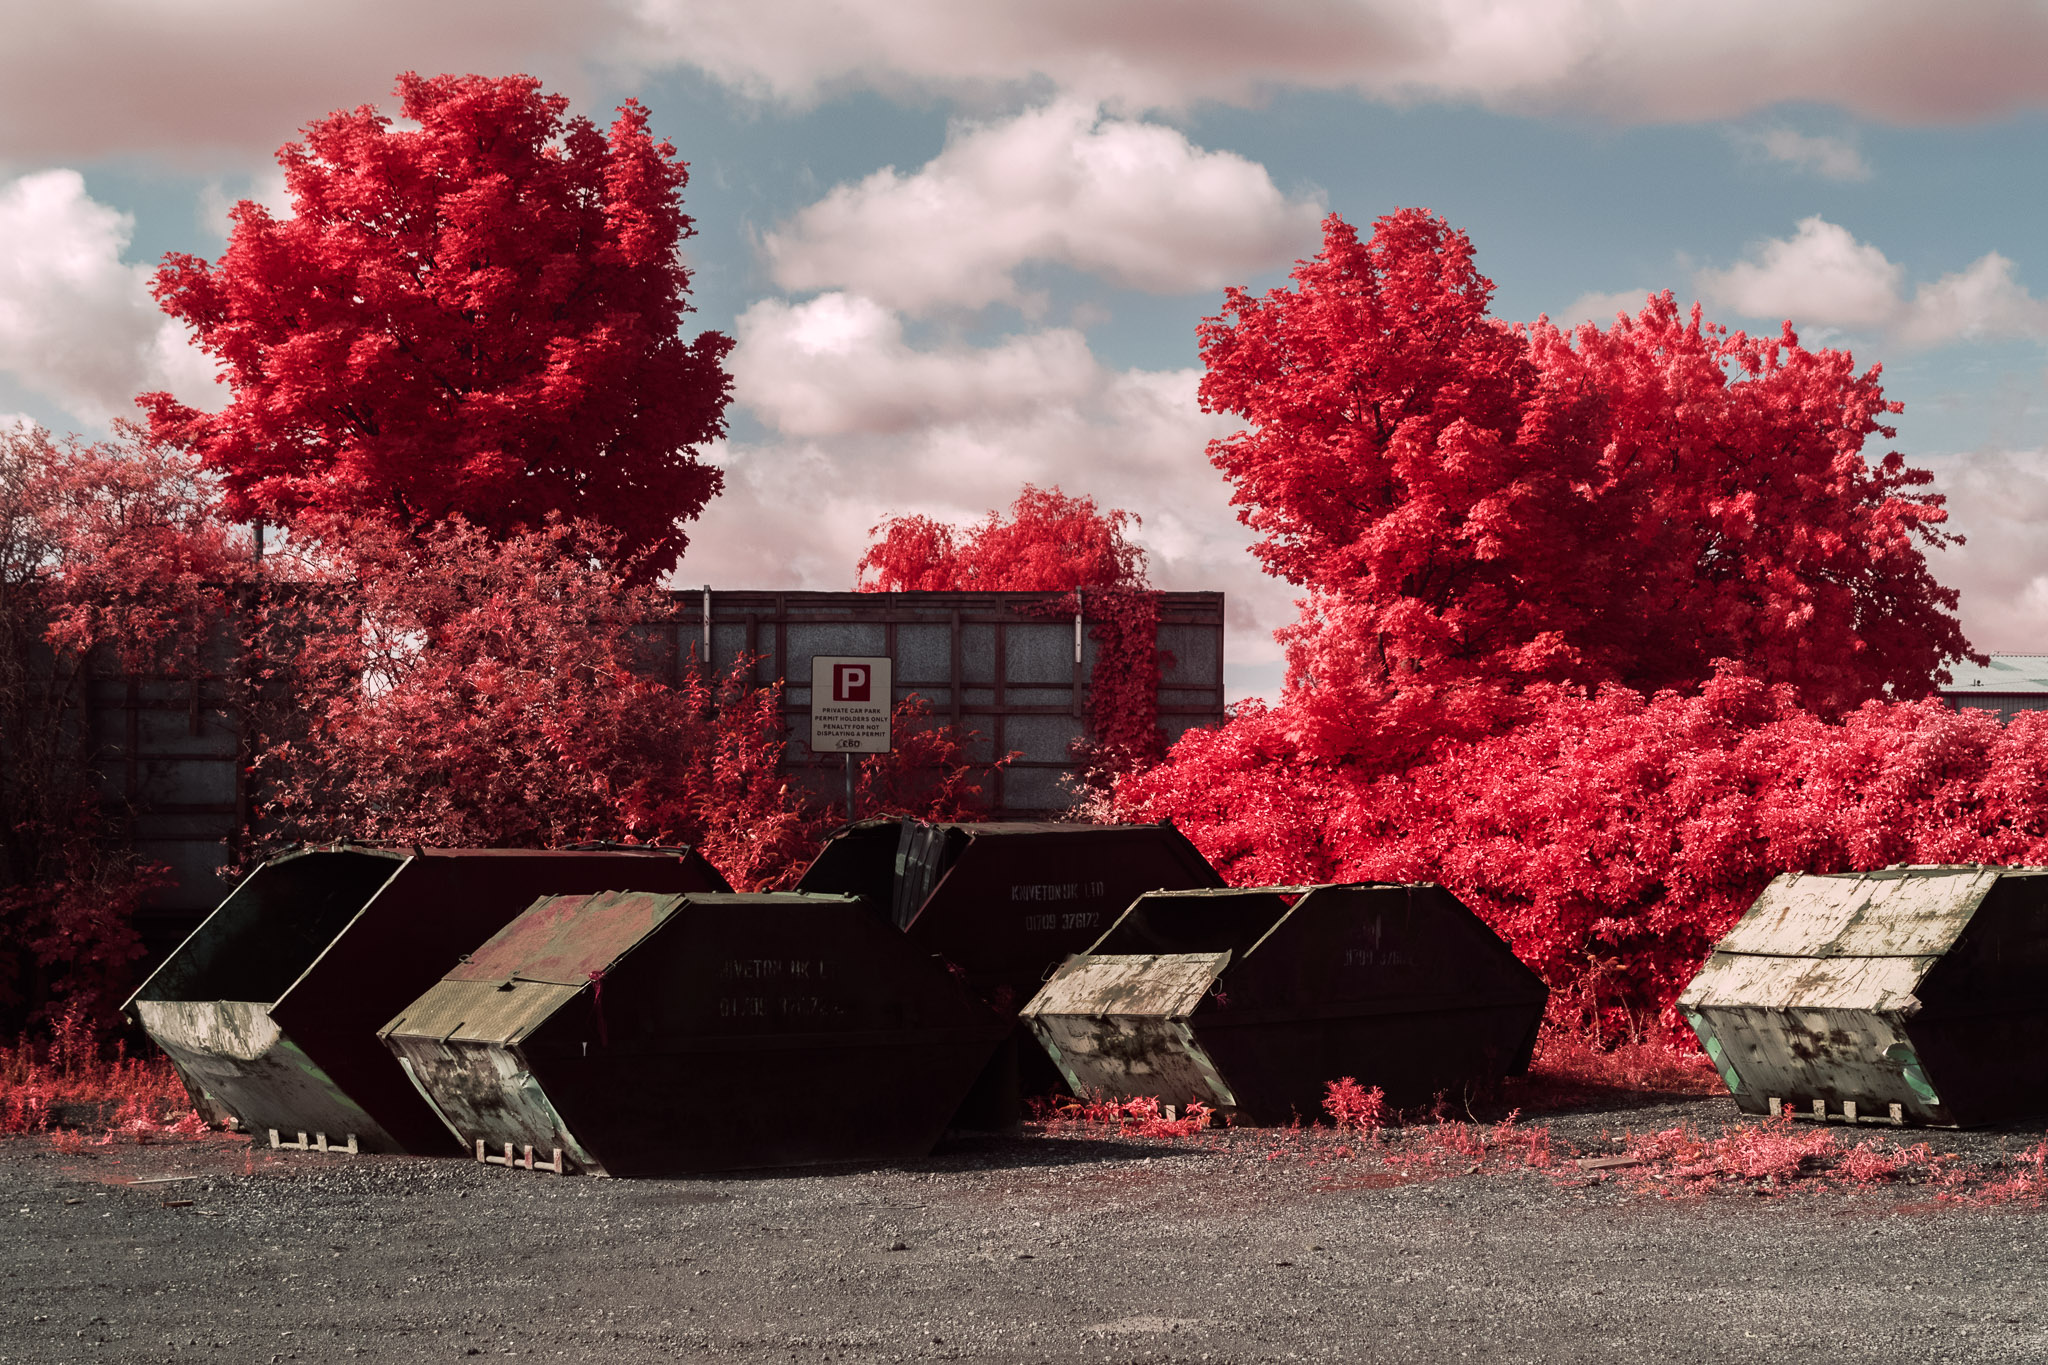 Kodak EIR Colour Infrared, Edgelands, Wasteland, Out of sight,  Skips ©Jonny Sutton